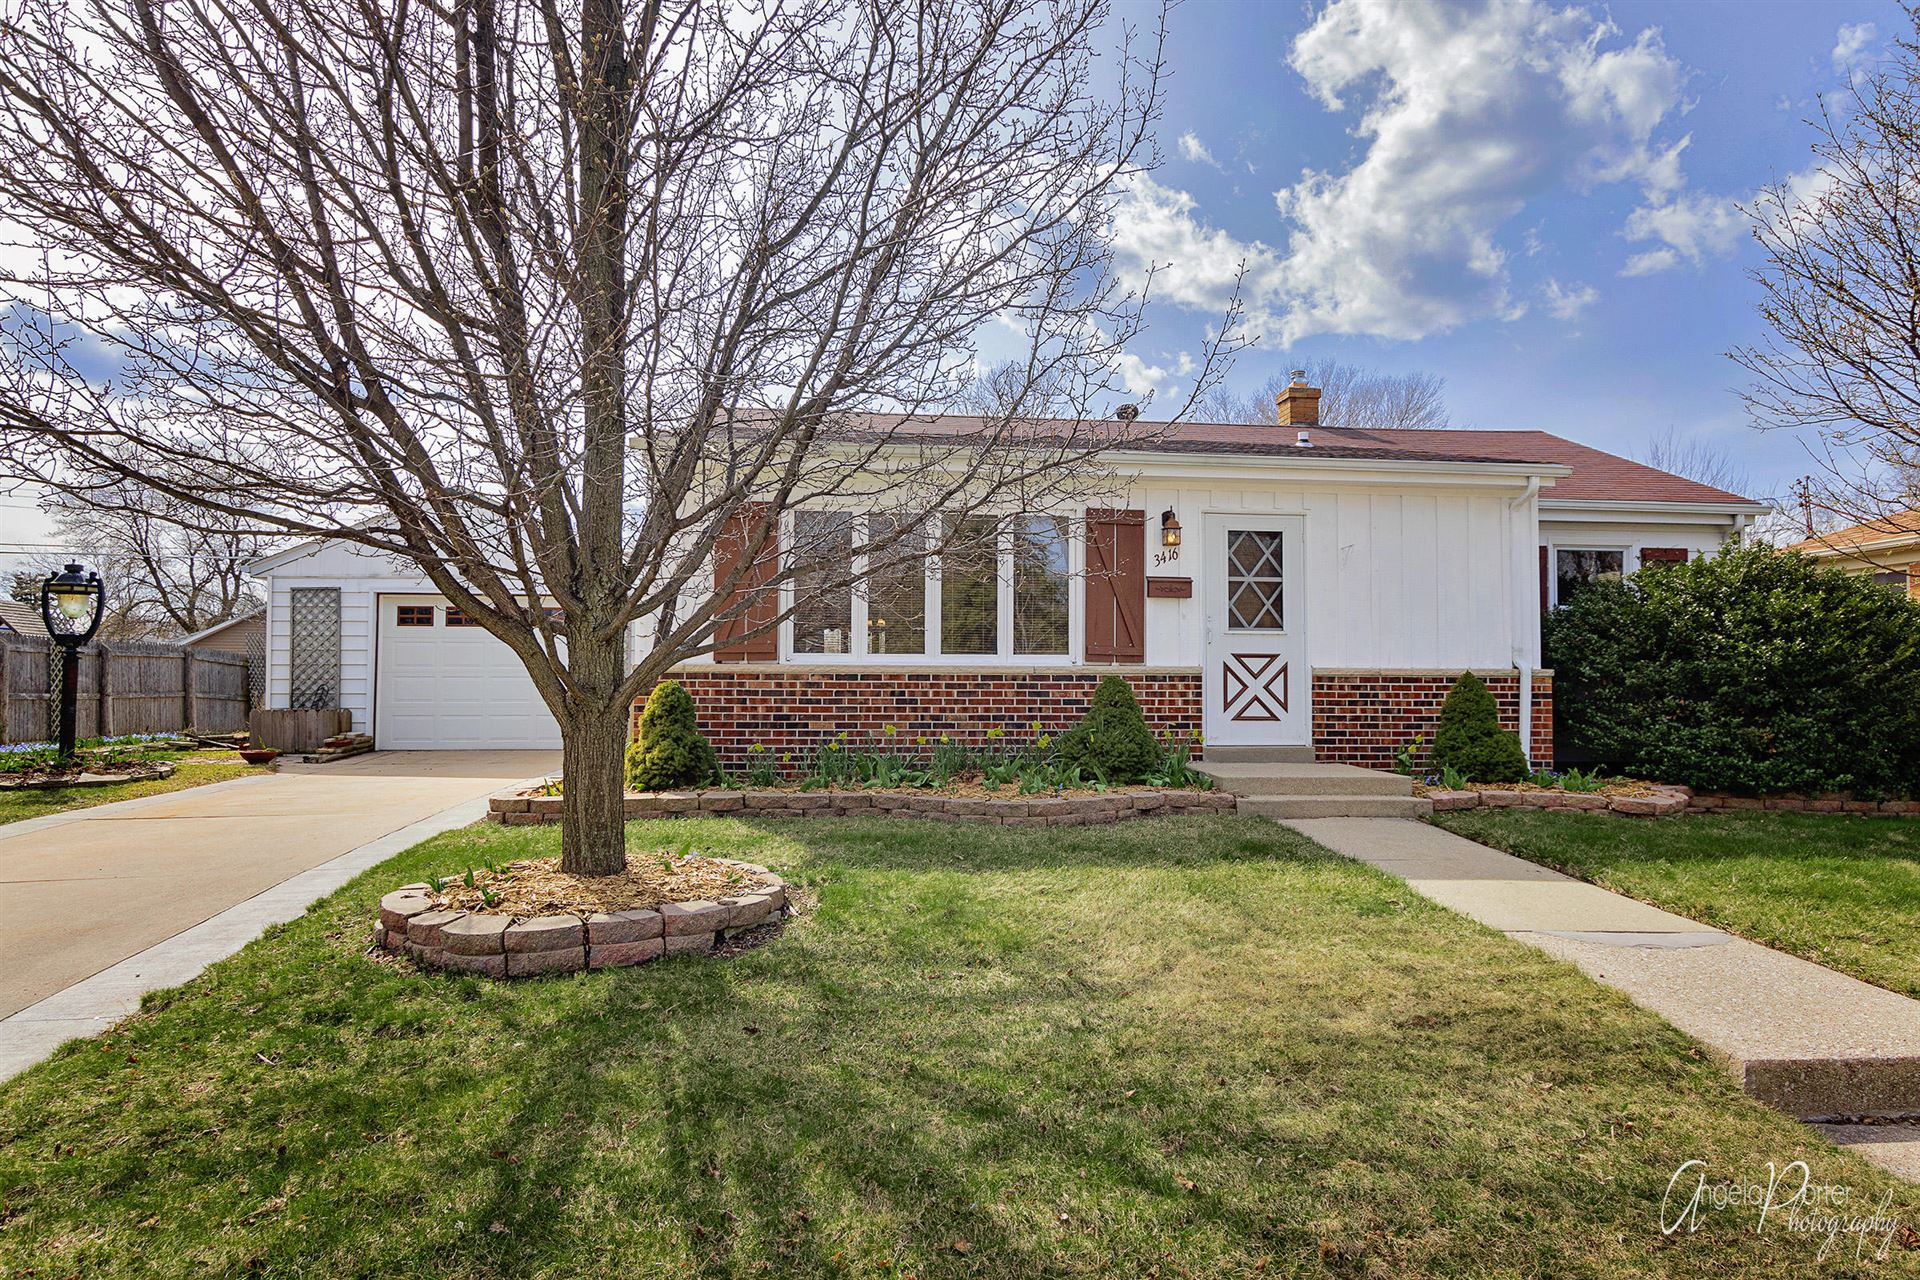 3416 6th Ave, Racine, WI 53402 - #: 1685769